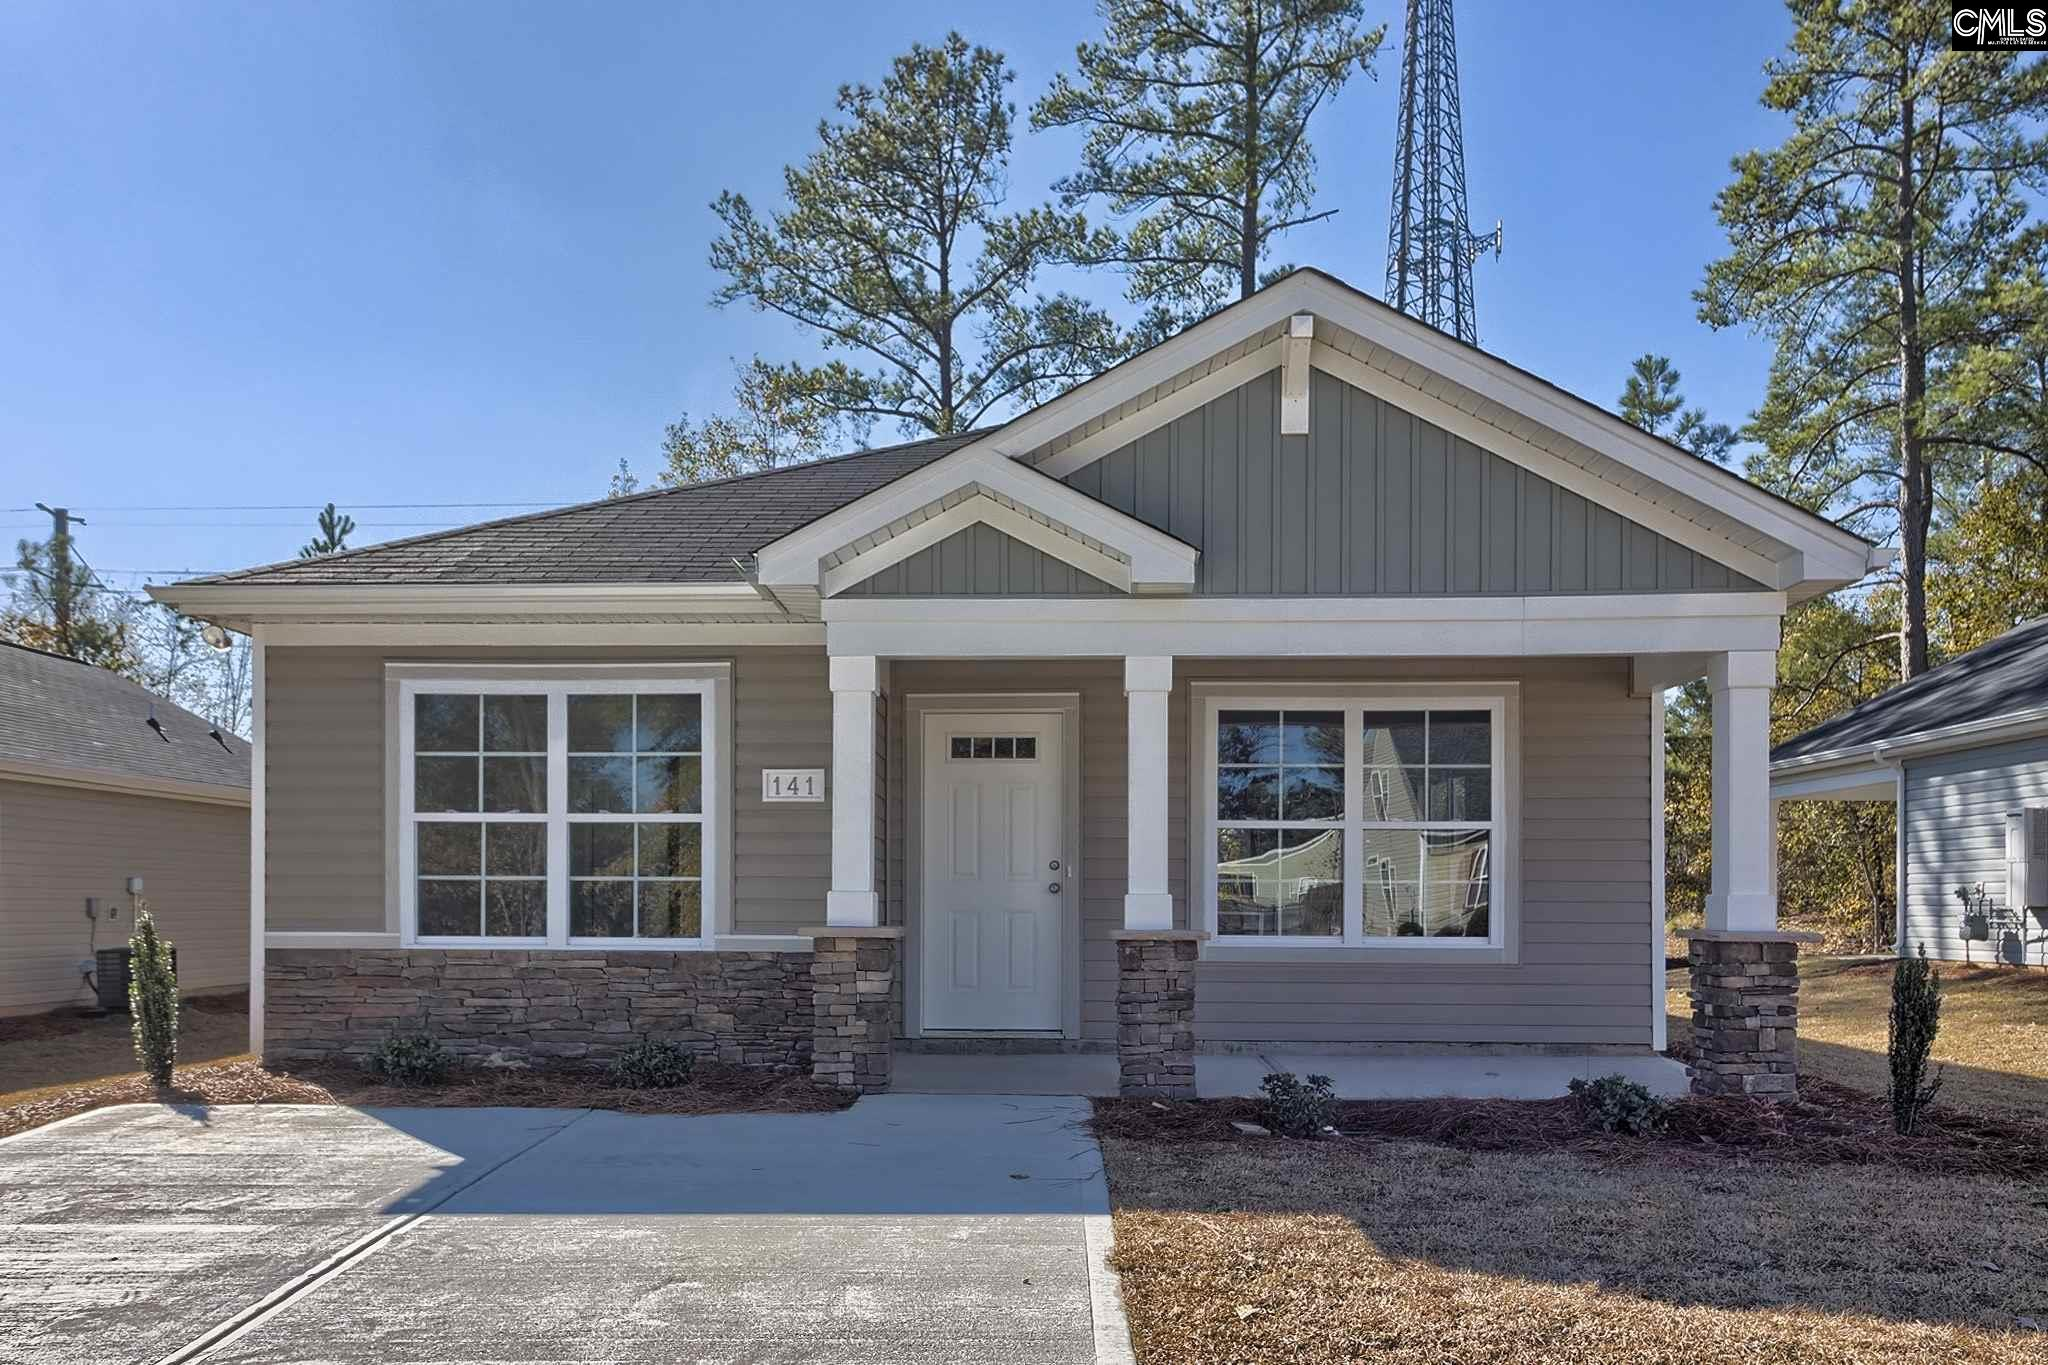 141 Weeping Willow Blythewood, SC 29016